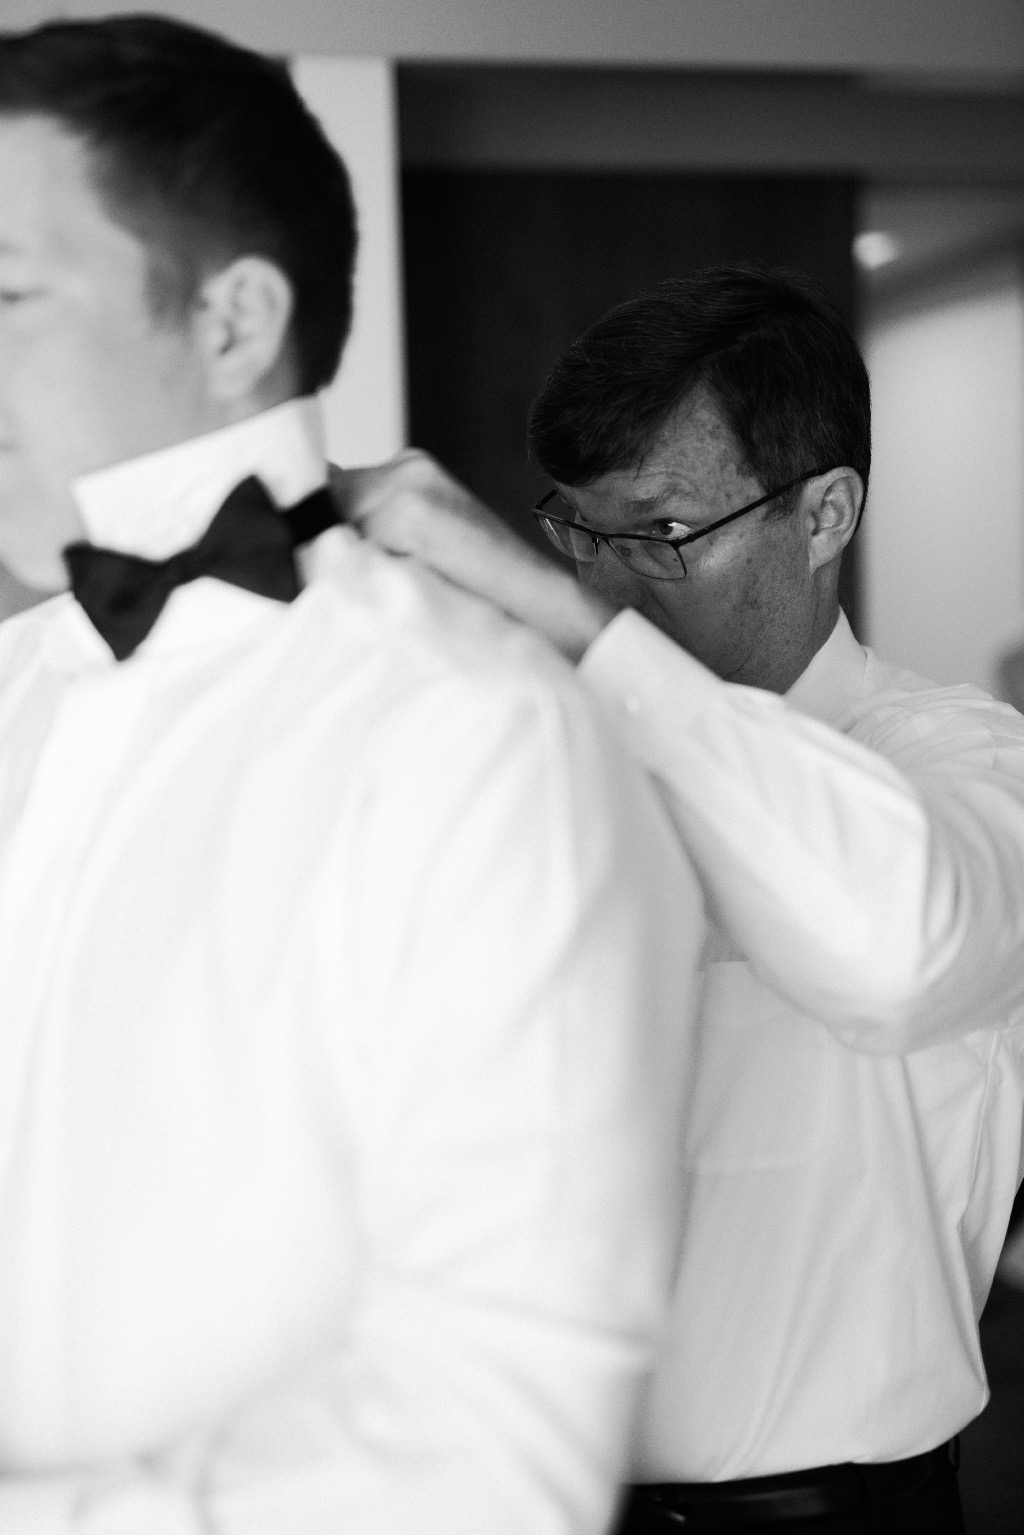 MD_MendocinoWedding_ScottAndrewStudio_3_GettingReady-6.jpg